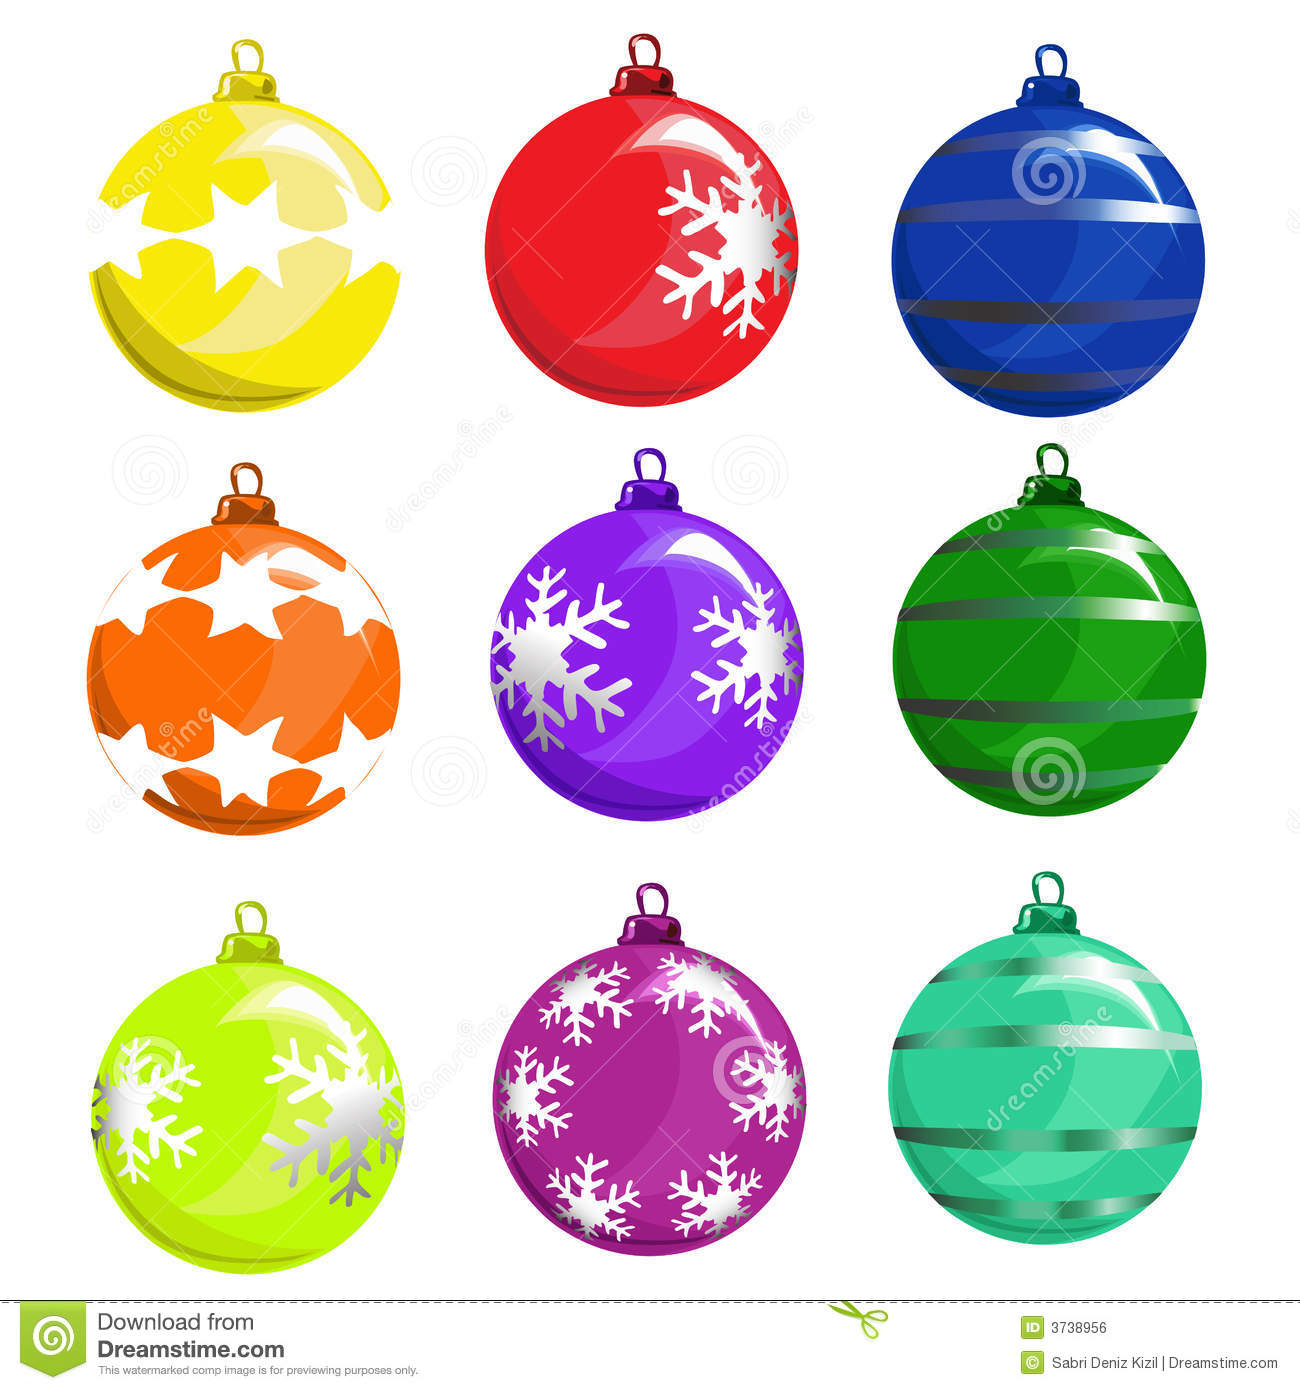 Christmas tree ball vector